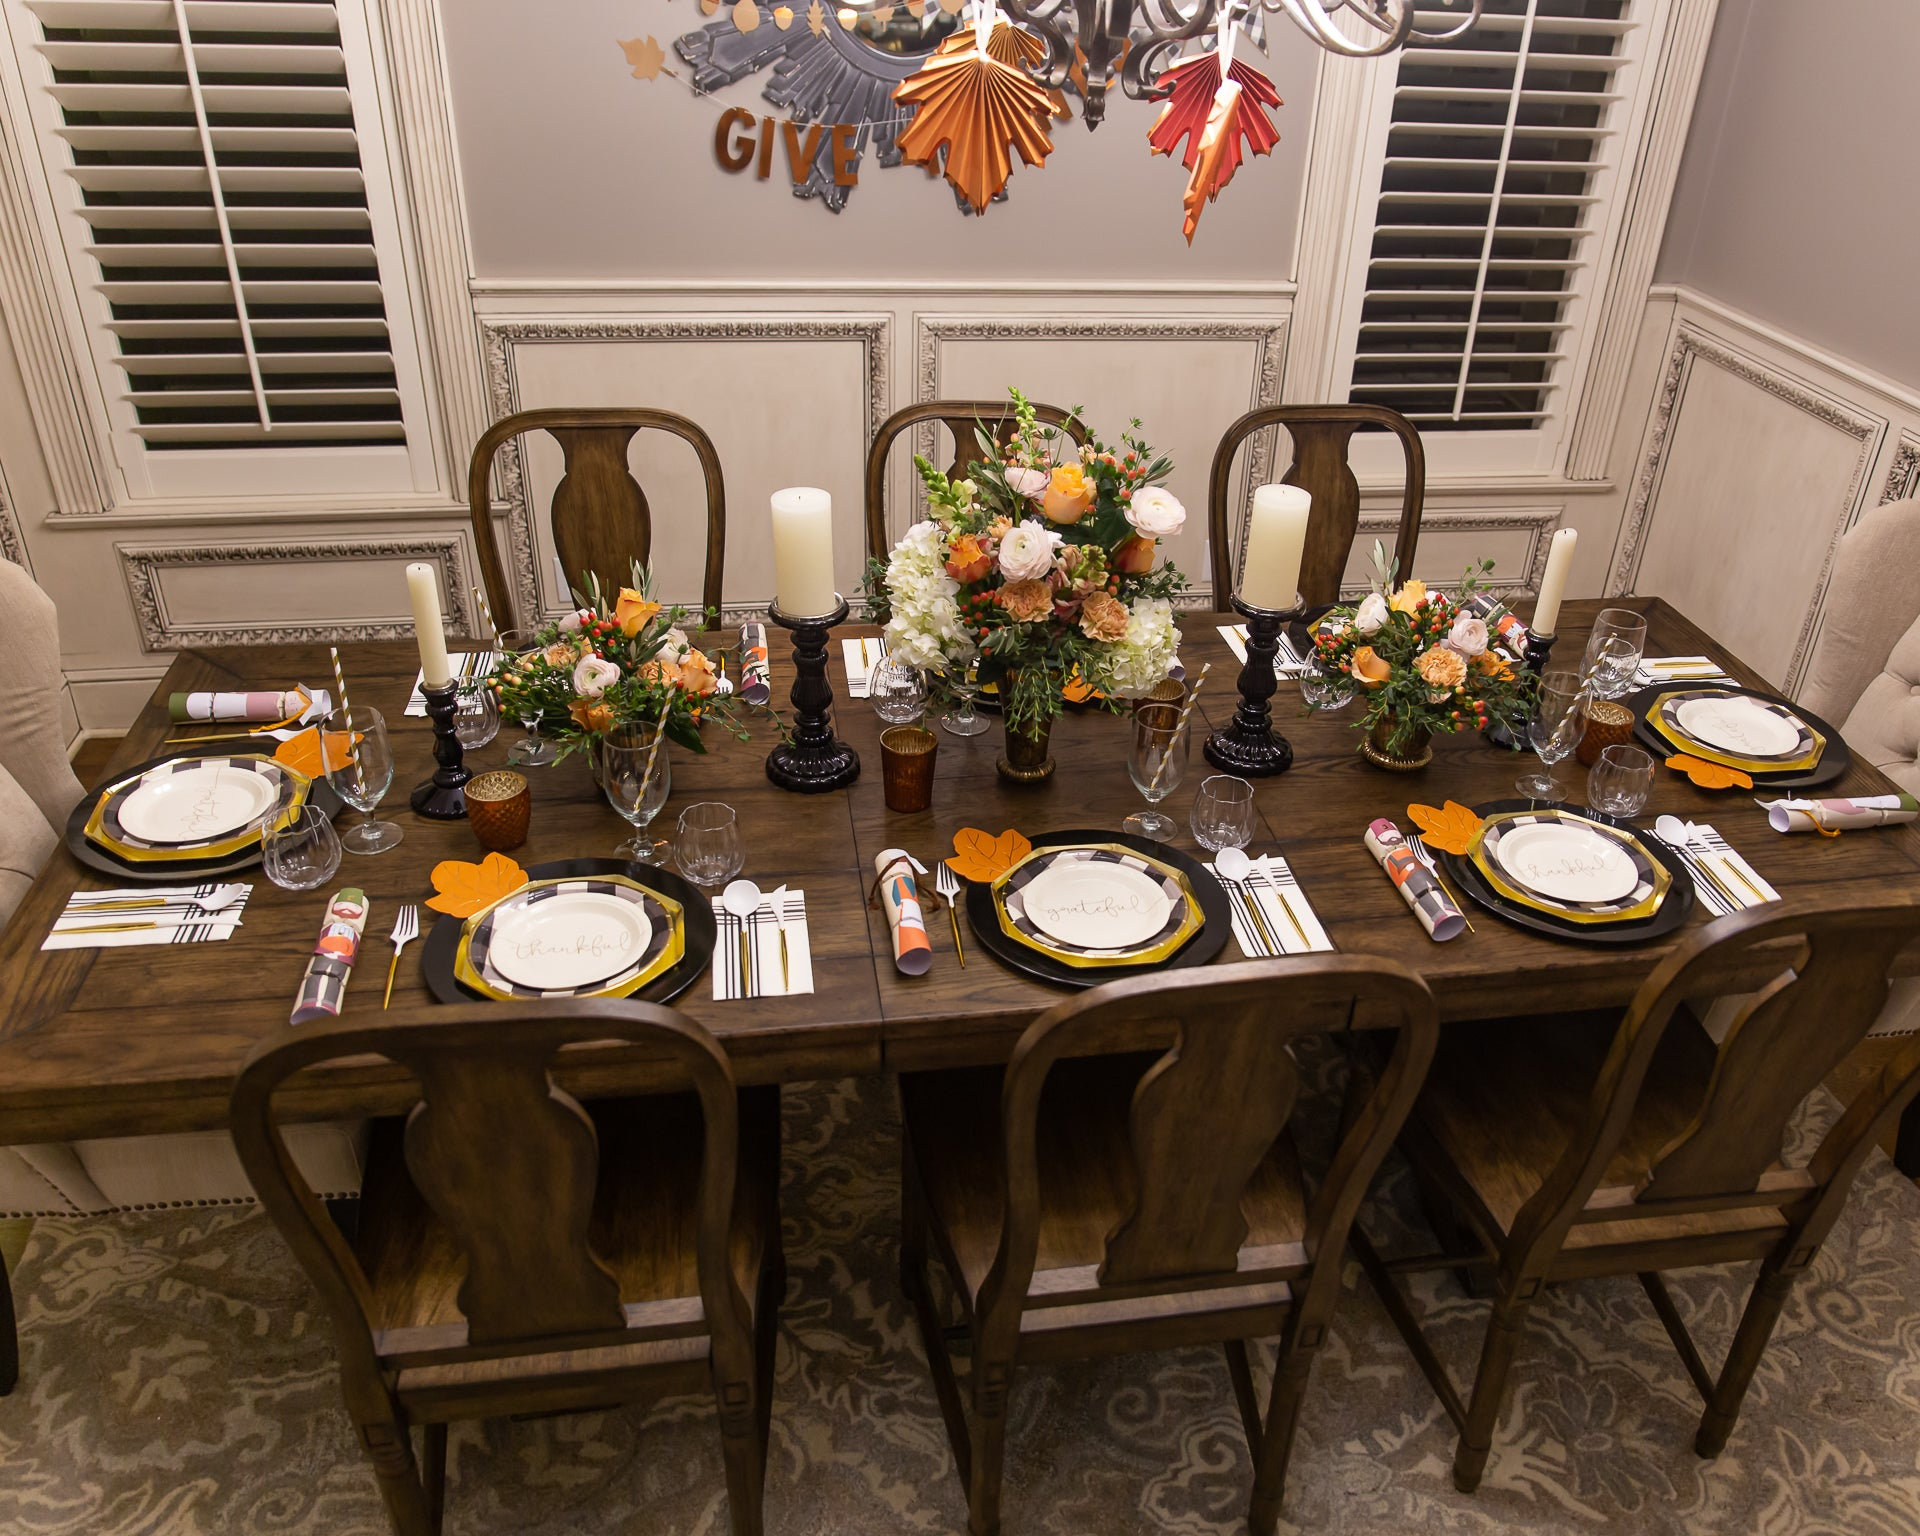 Friendsgiving dinner table setting